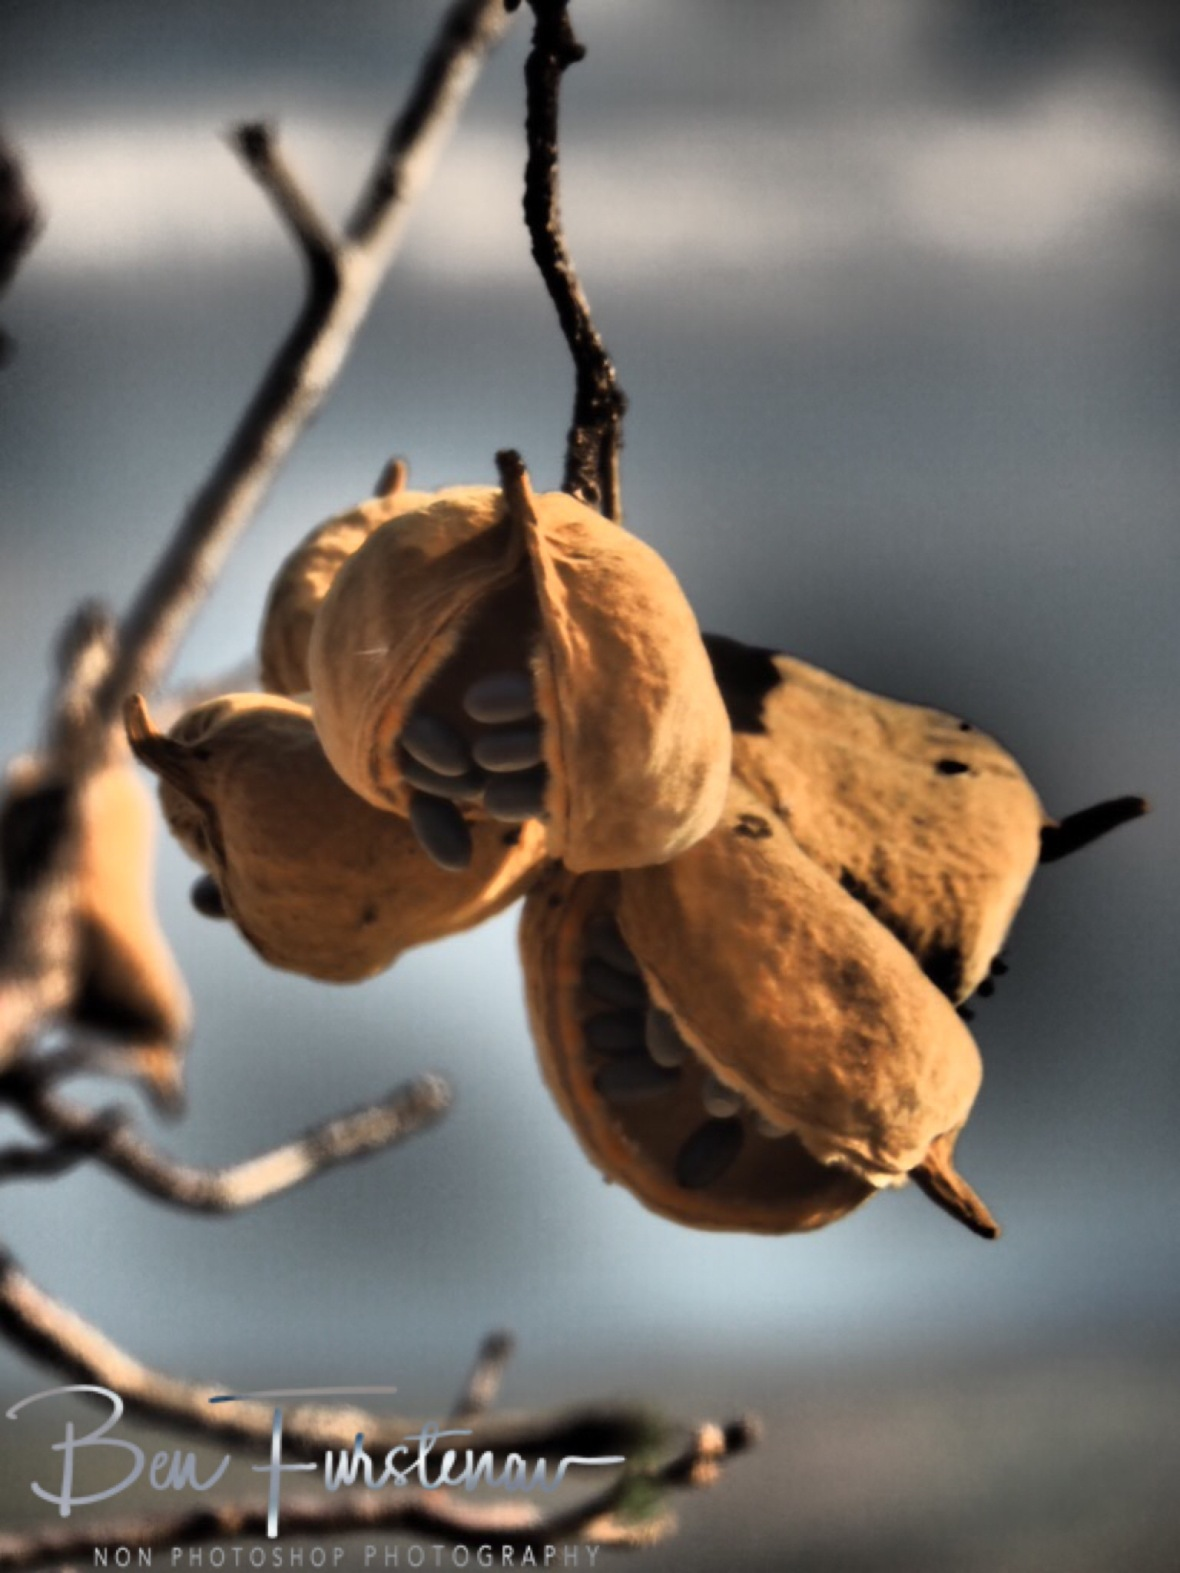 Baobab fruit loosing their teeth?, Mwanza Region, Malawi